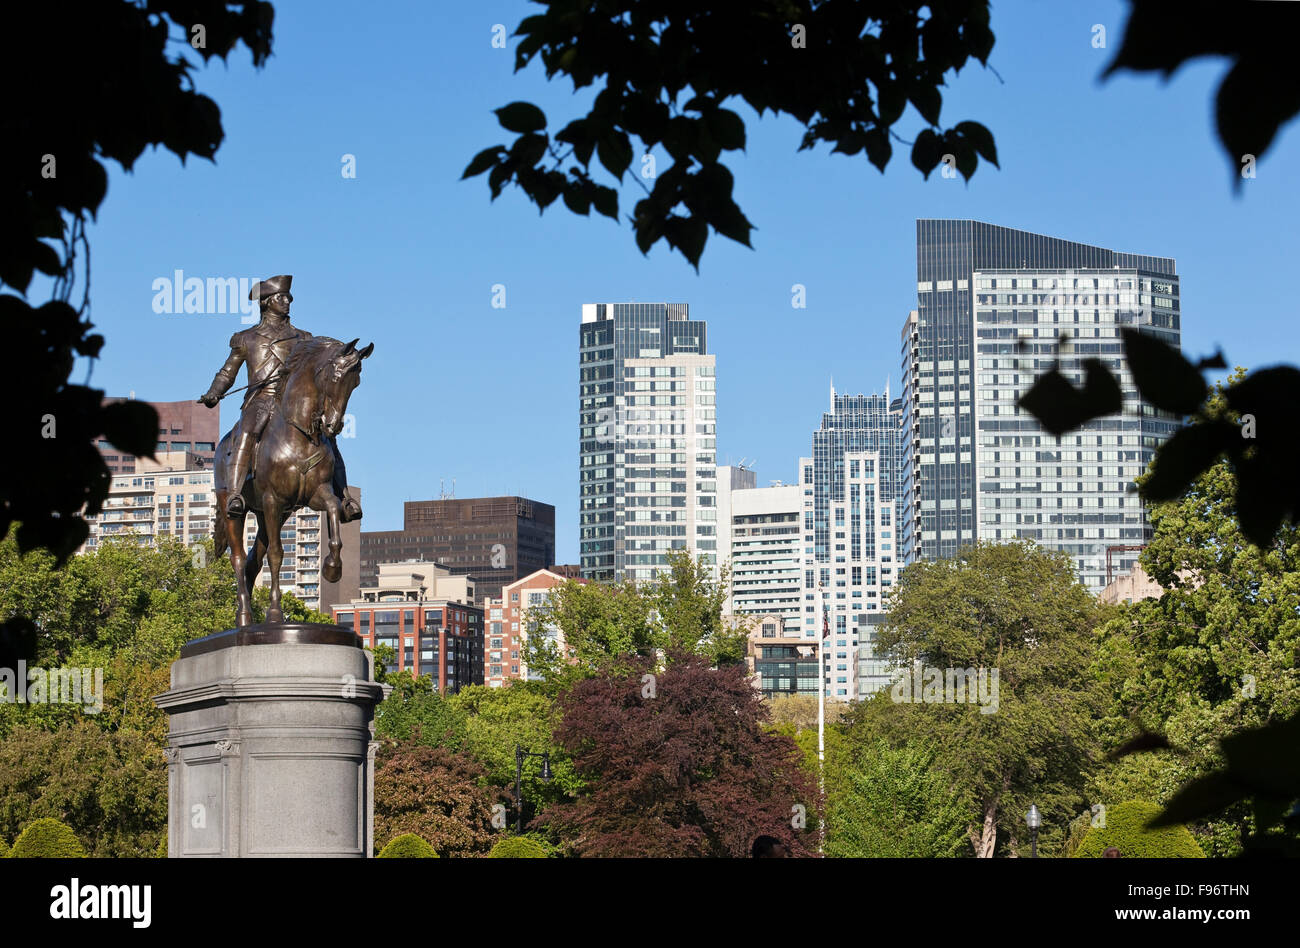 View from west end of Boston Public Garden towards the city centre. The bronze statue on the left is of George Washington - Stock Image